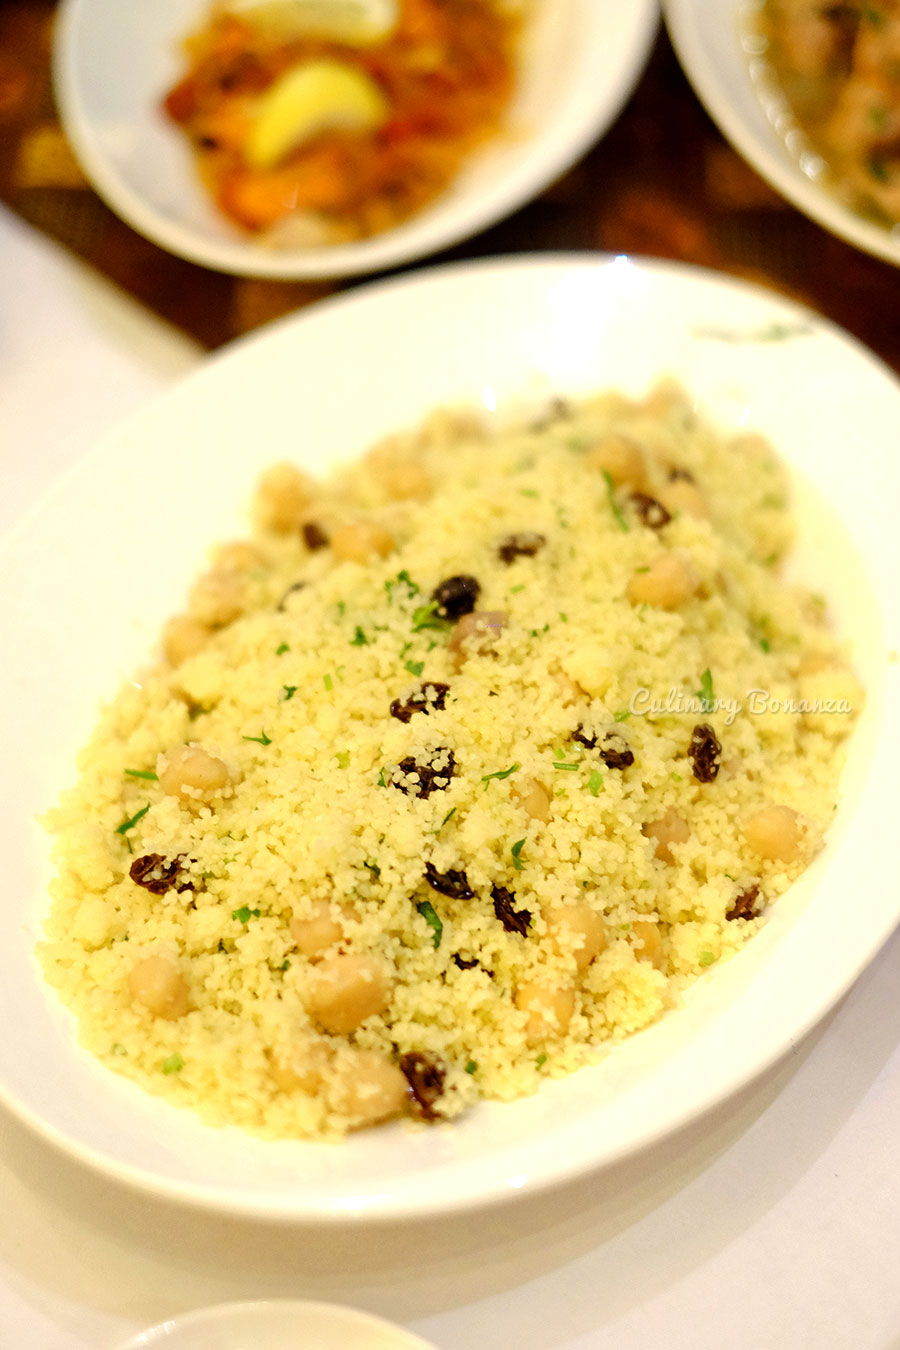 couscous for Ramadhan at Sailendra Restaurant, JW Marriott Jakarta (www.culinarybonanza.com)